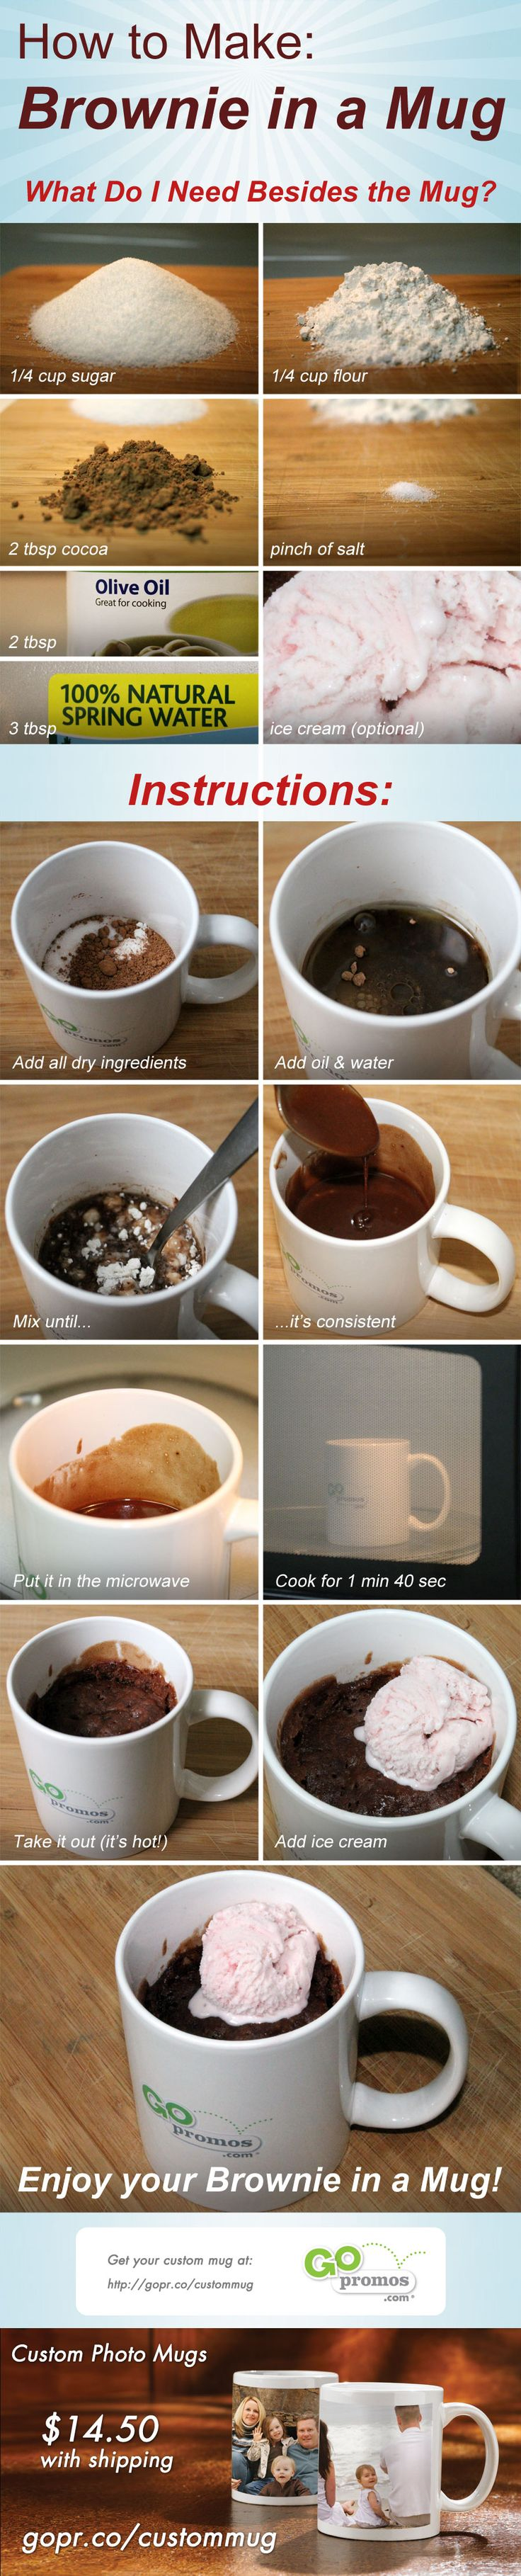 How to Make Brownie in a Mug  this will be good on those nights I need a quick brownie fix